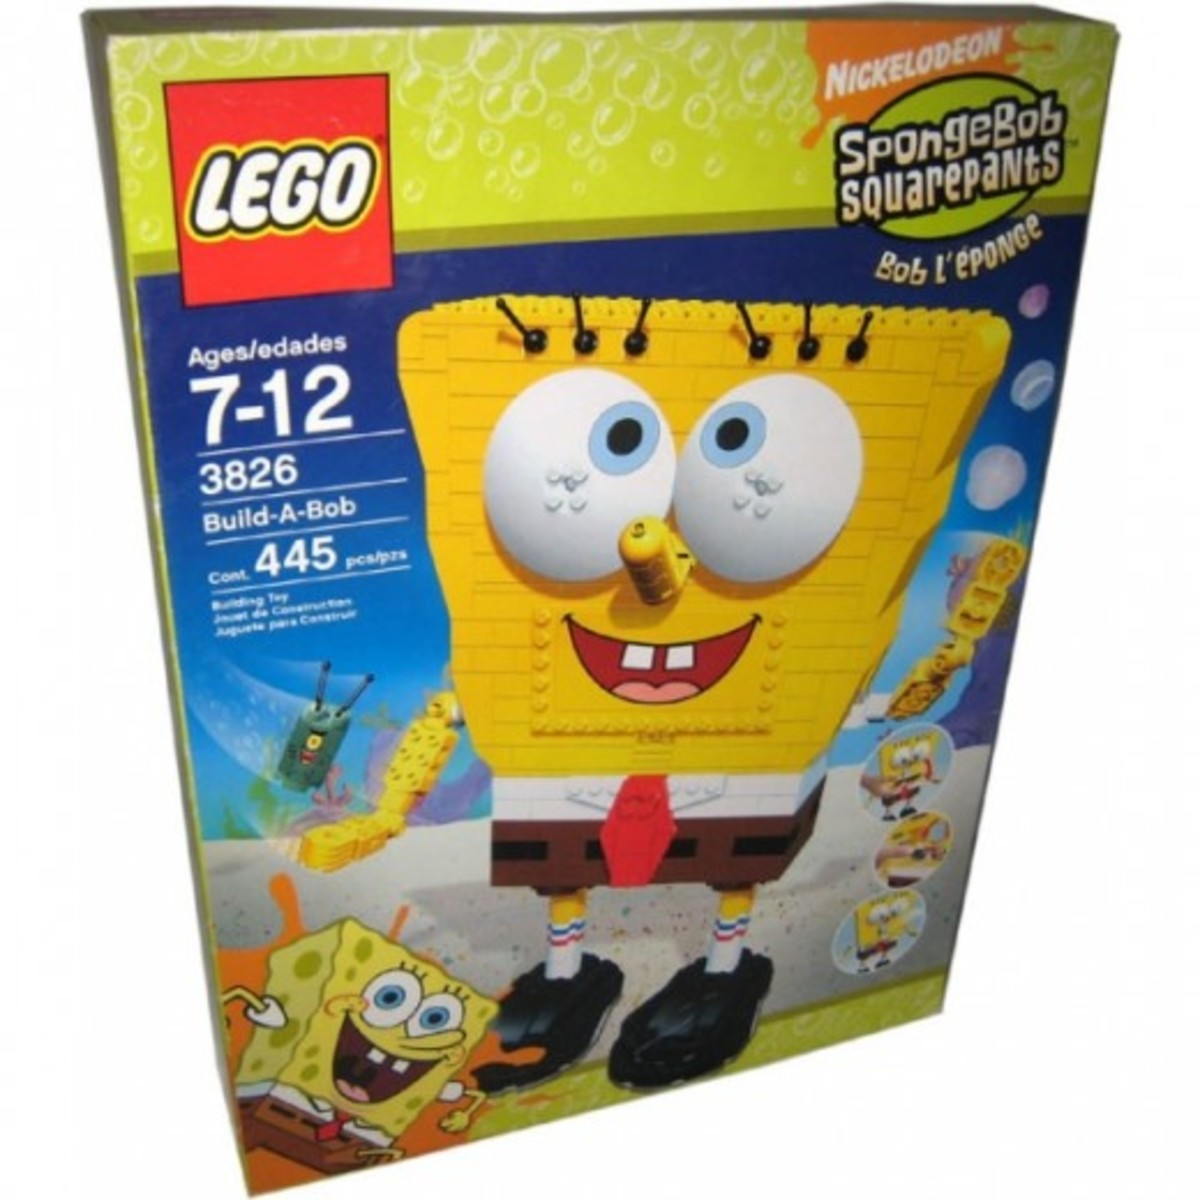 LEGO SpongeBob SquarePants Build-A-Bob 3826 Box